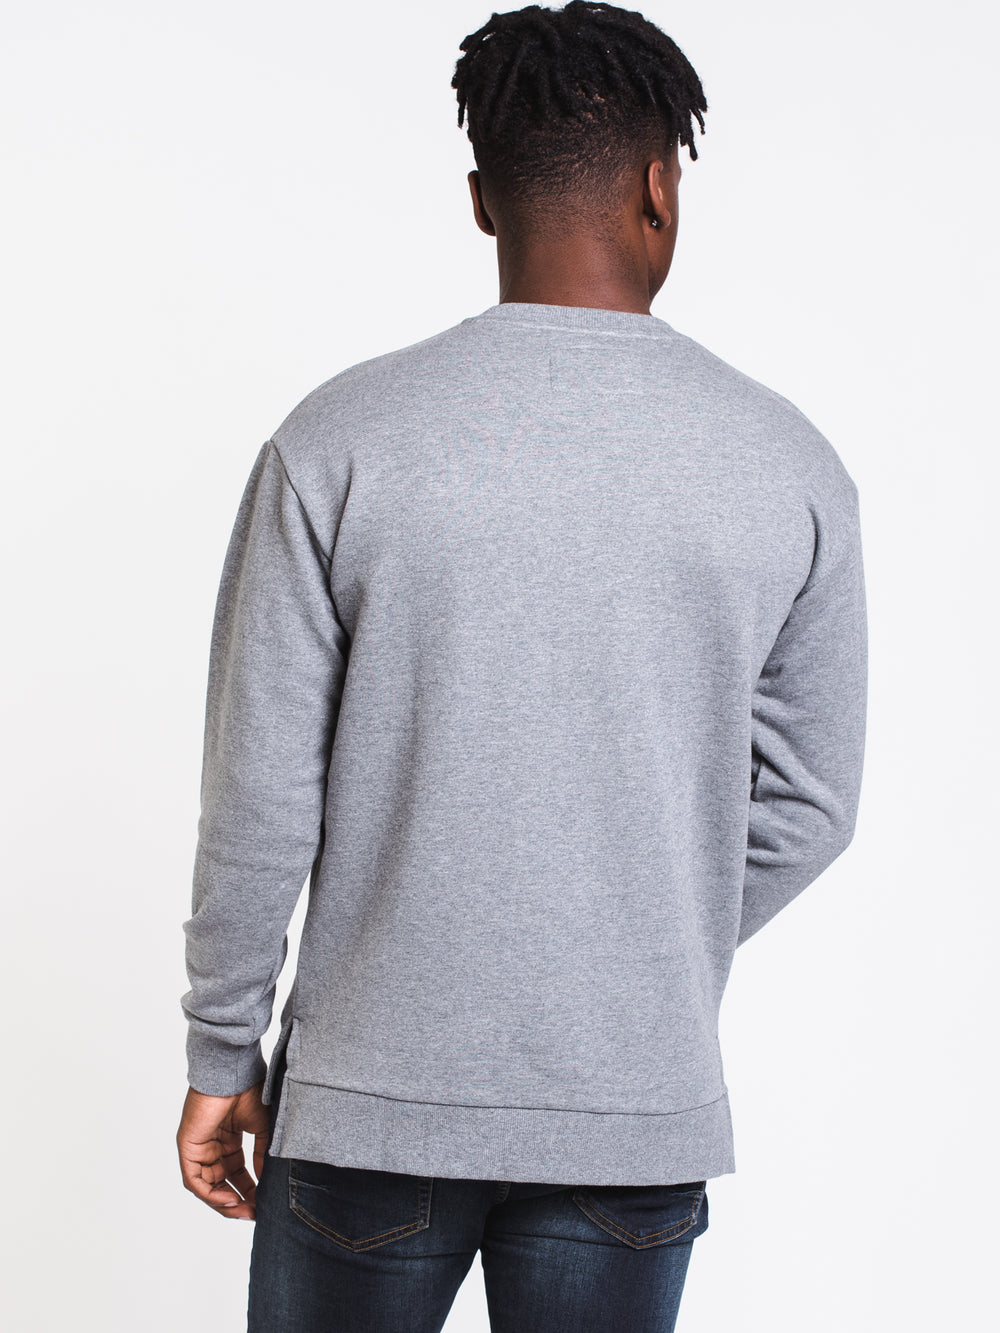 MENS PROJECT ZANEROBE CREW - HTHR GREY